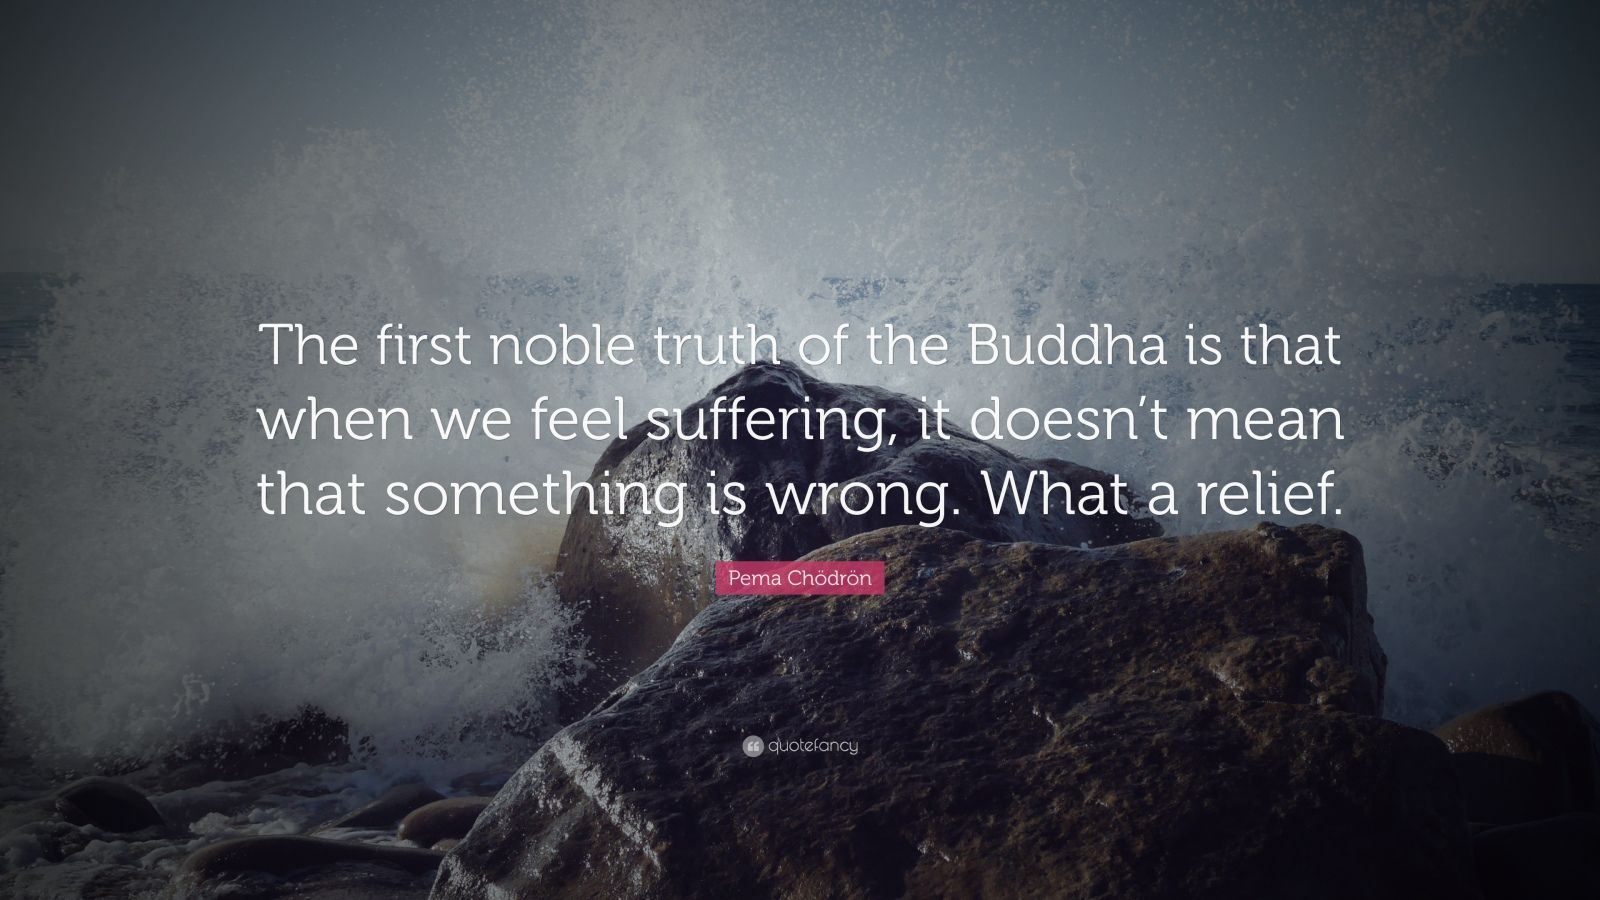 """Pema Chödrön Quote: """"The first noble truth of the Buddha is that when we feel suffering, it doesn't mean that something is wrong. What a relief."""""""